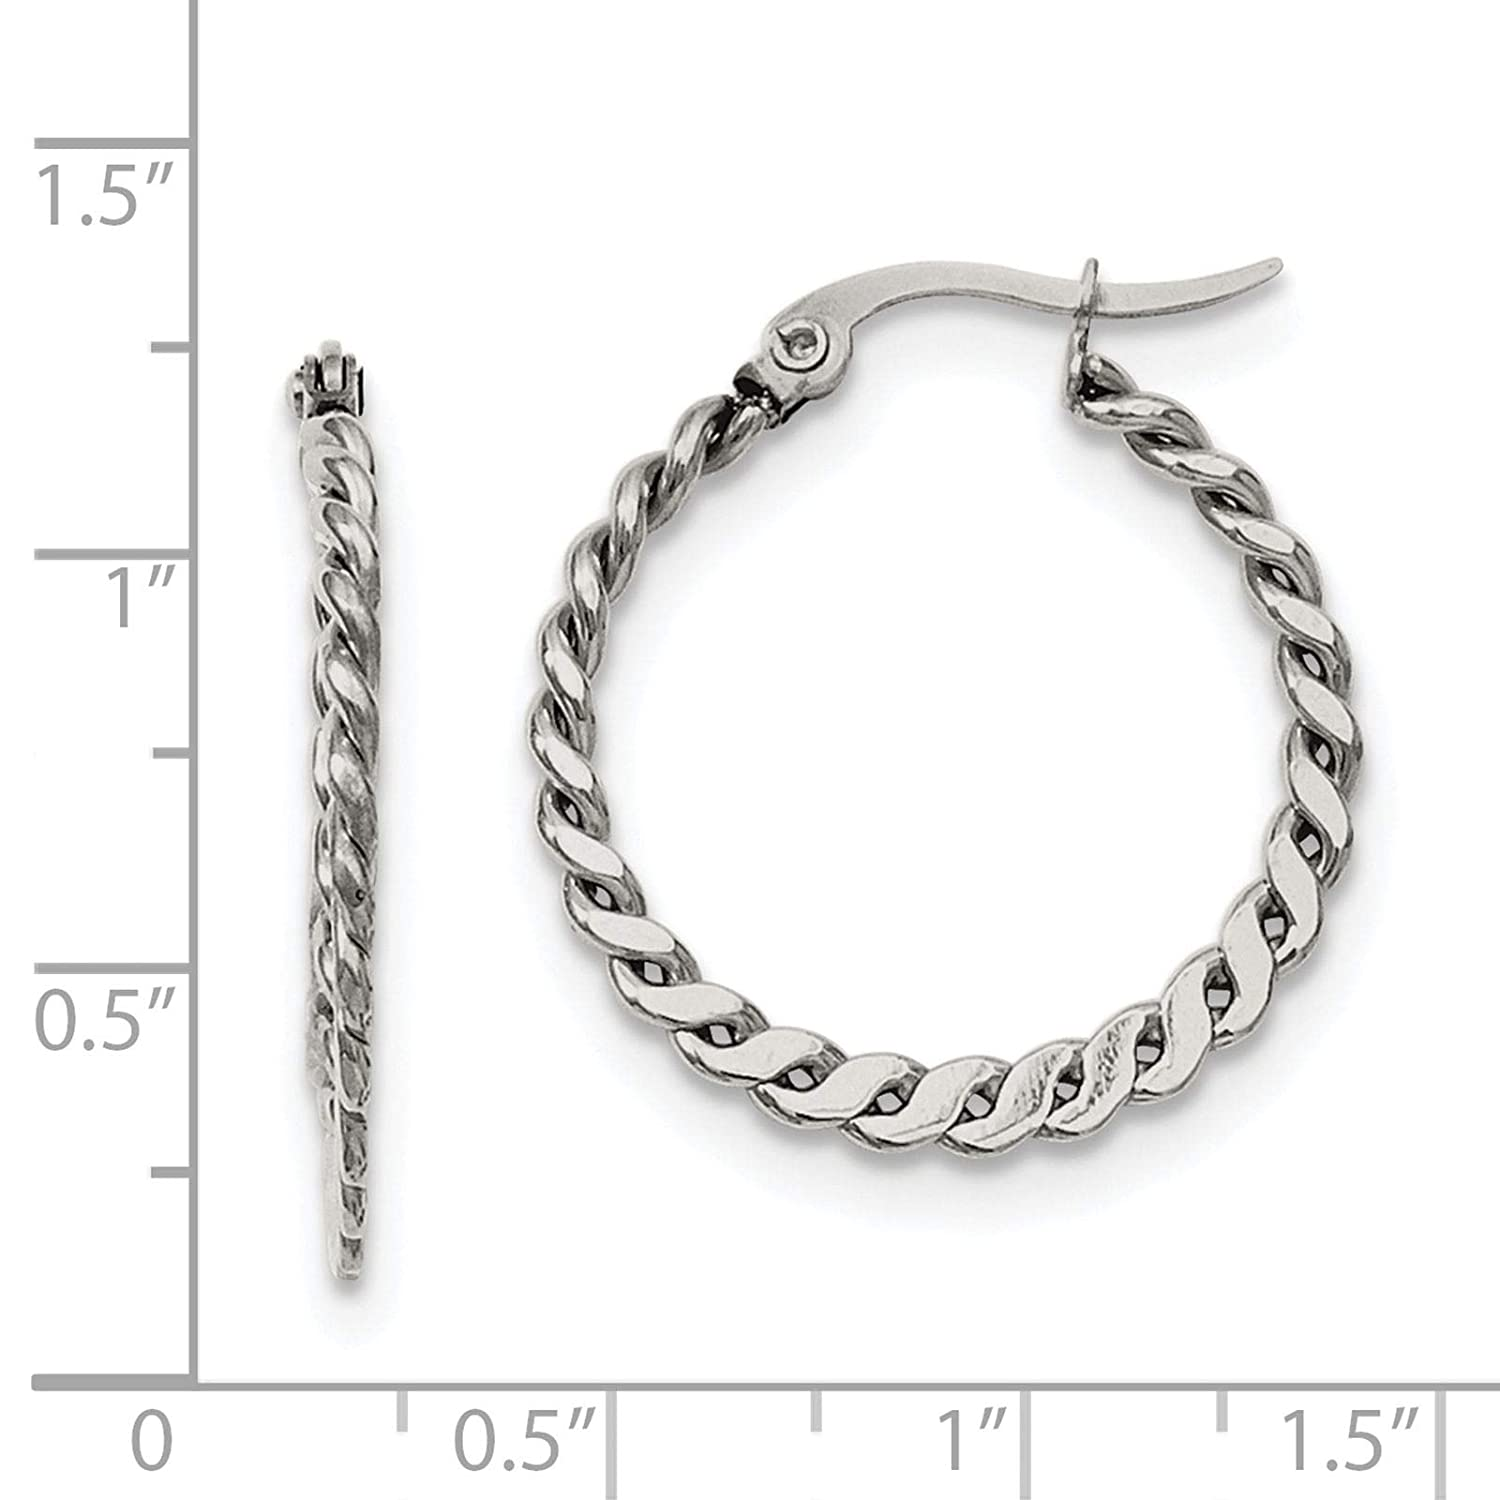 Stainless Steel Polished /& Textured Twisted Hoop Earrings 2mm x 29mm